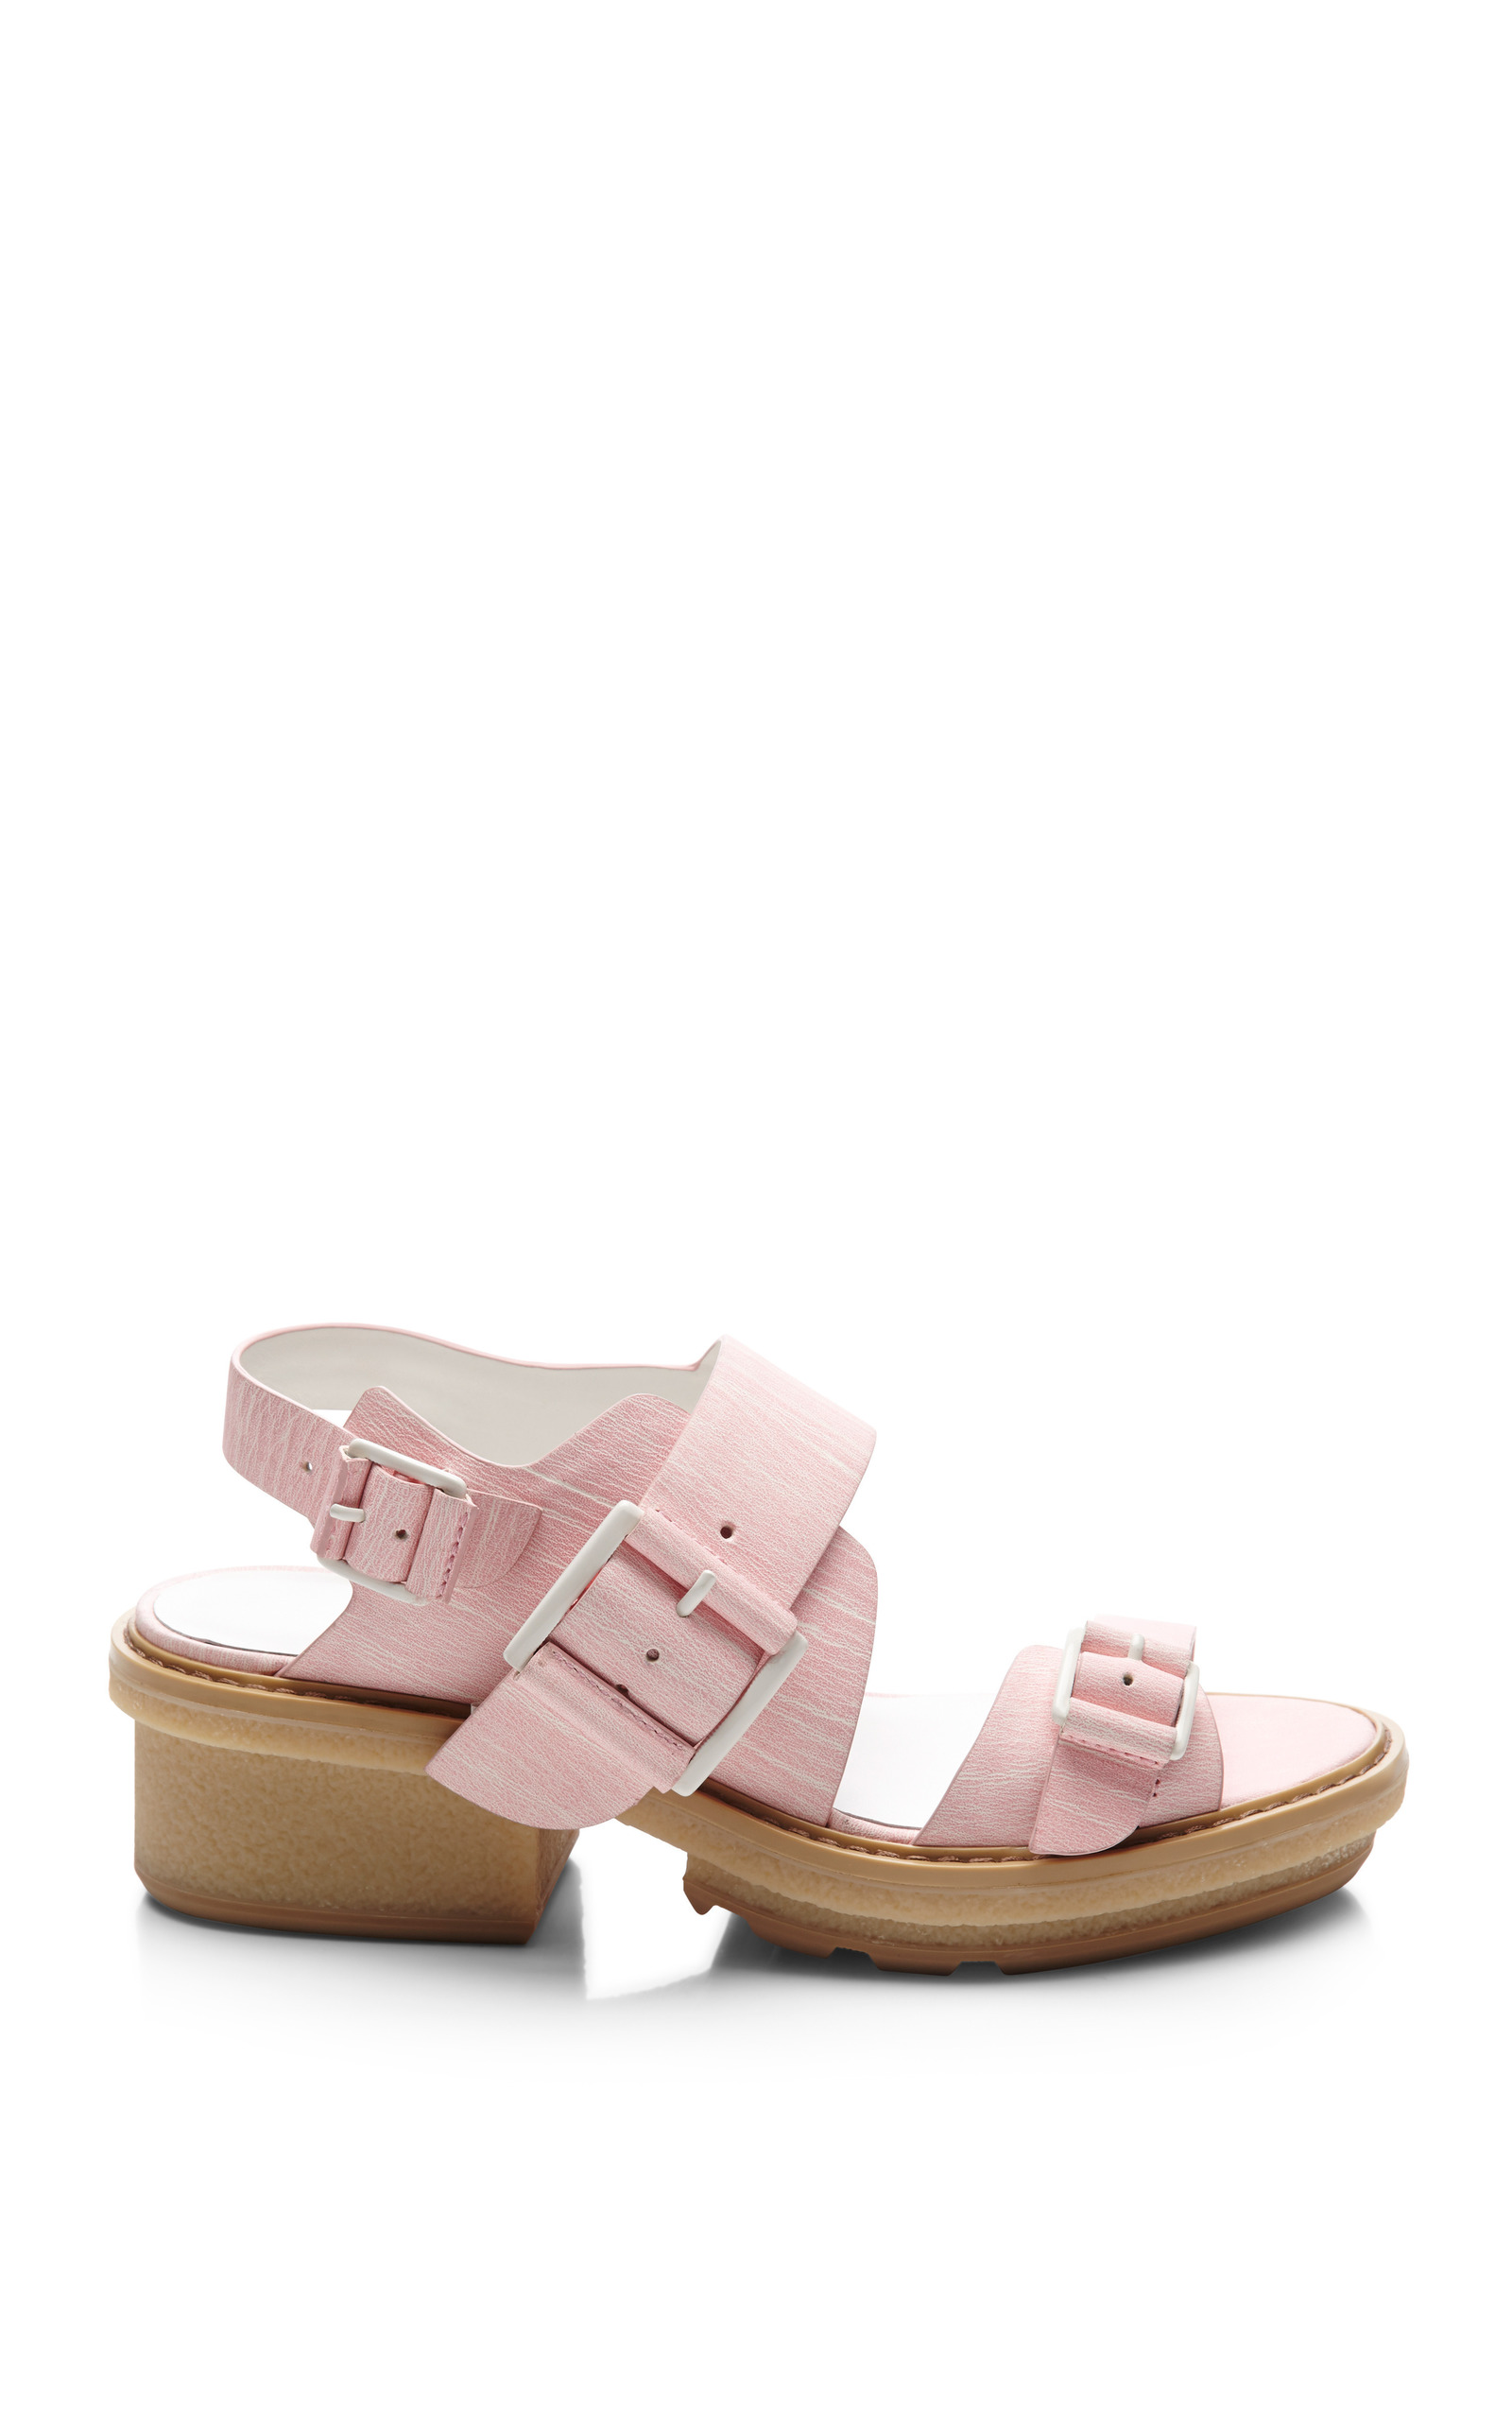 3.1 Phillip Lim Leather Mallory Sandals